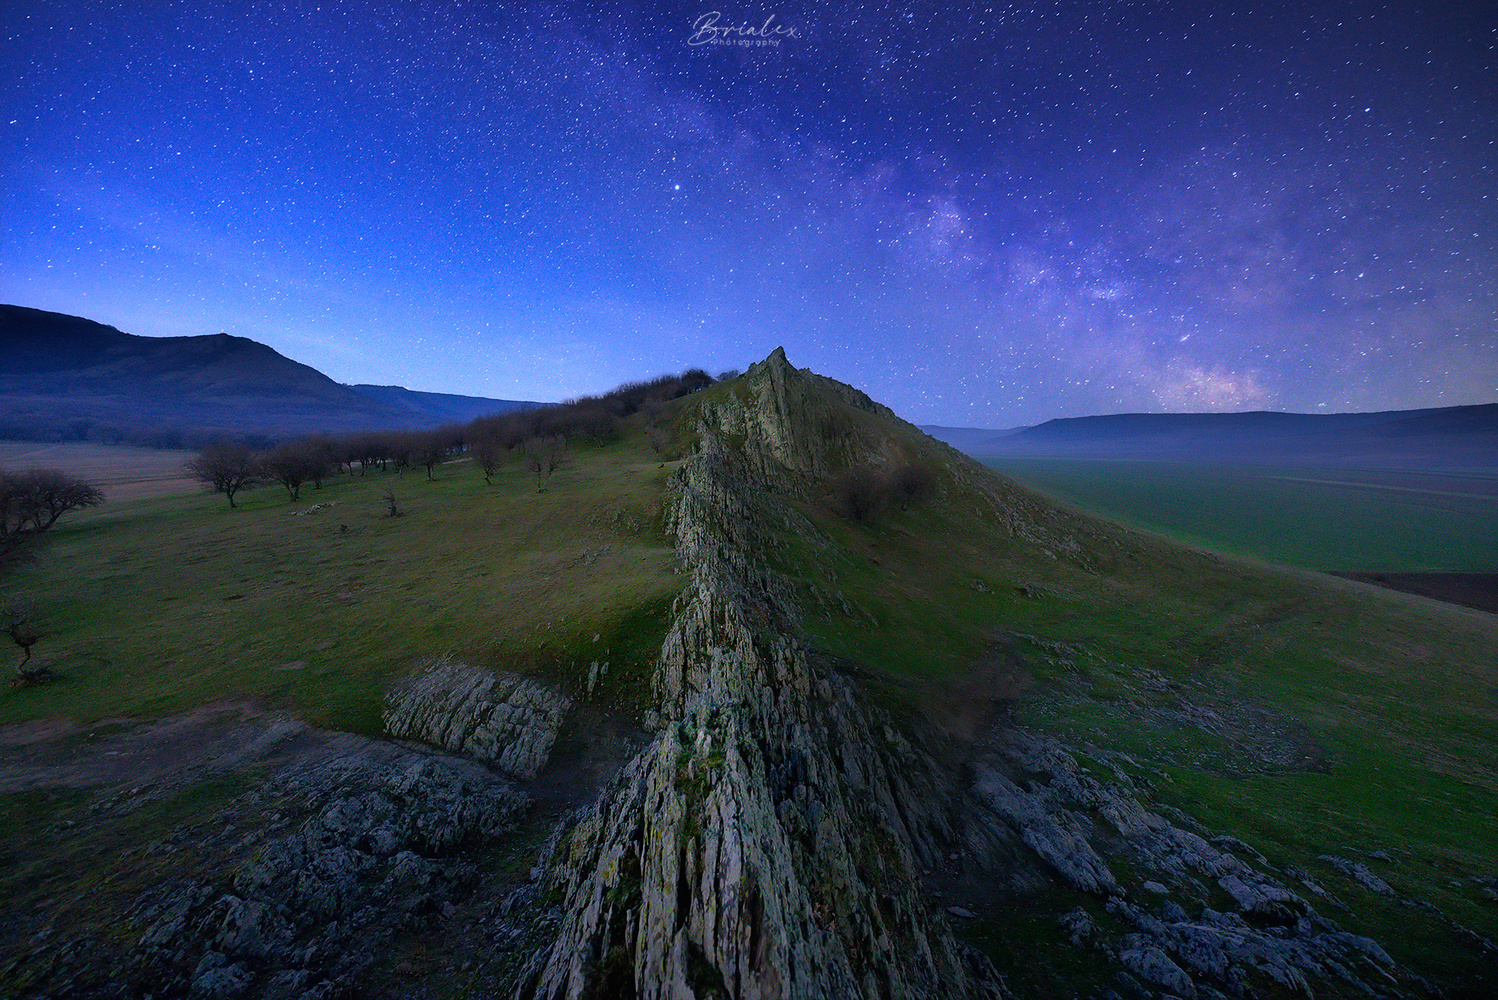 Looking towards millions of years ago by Brighilă Alex